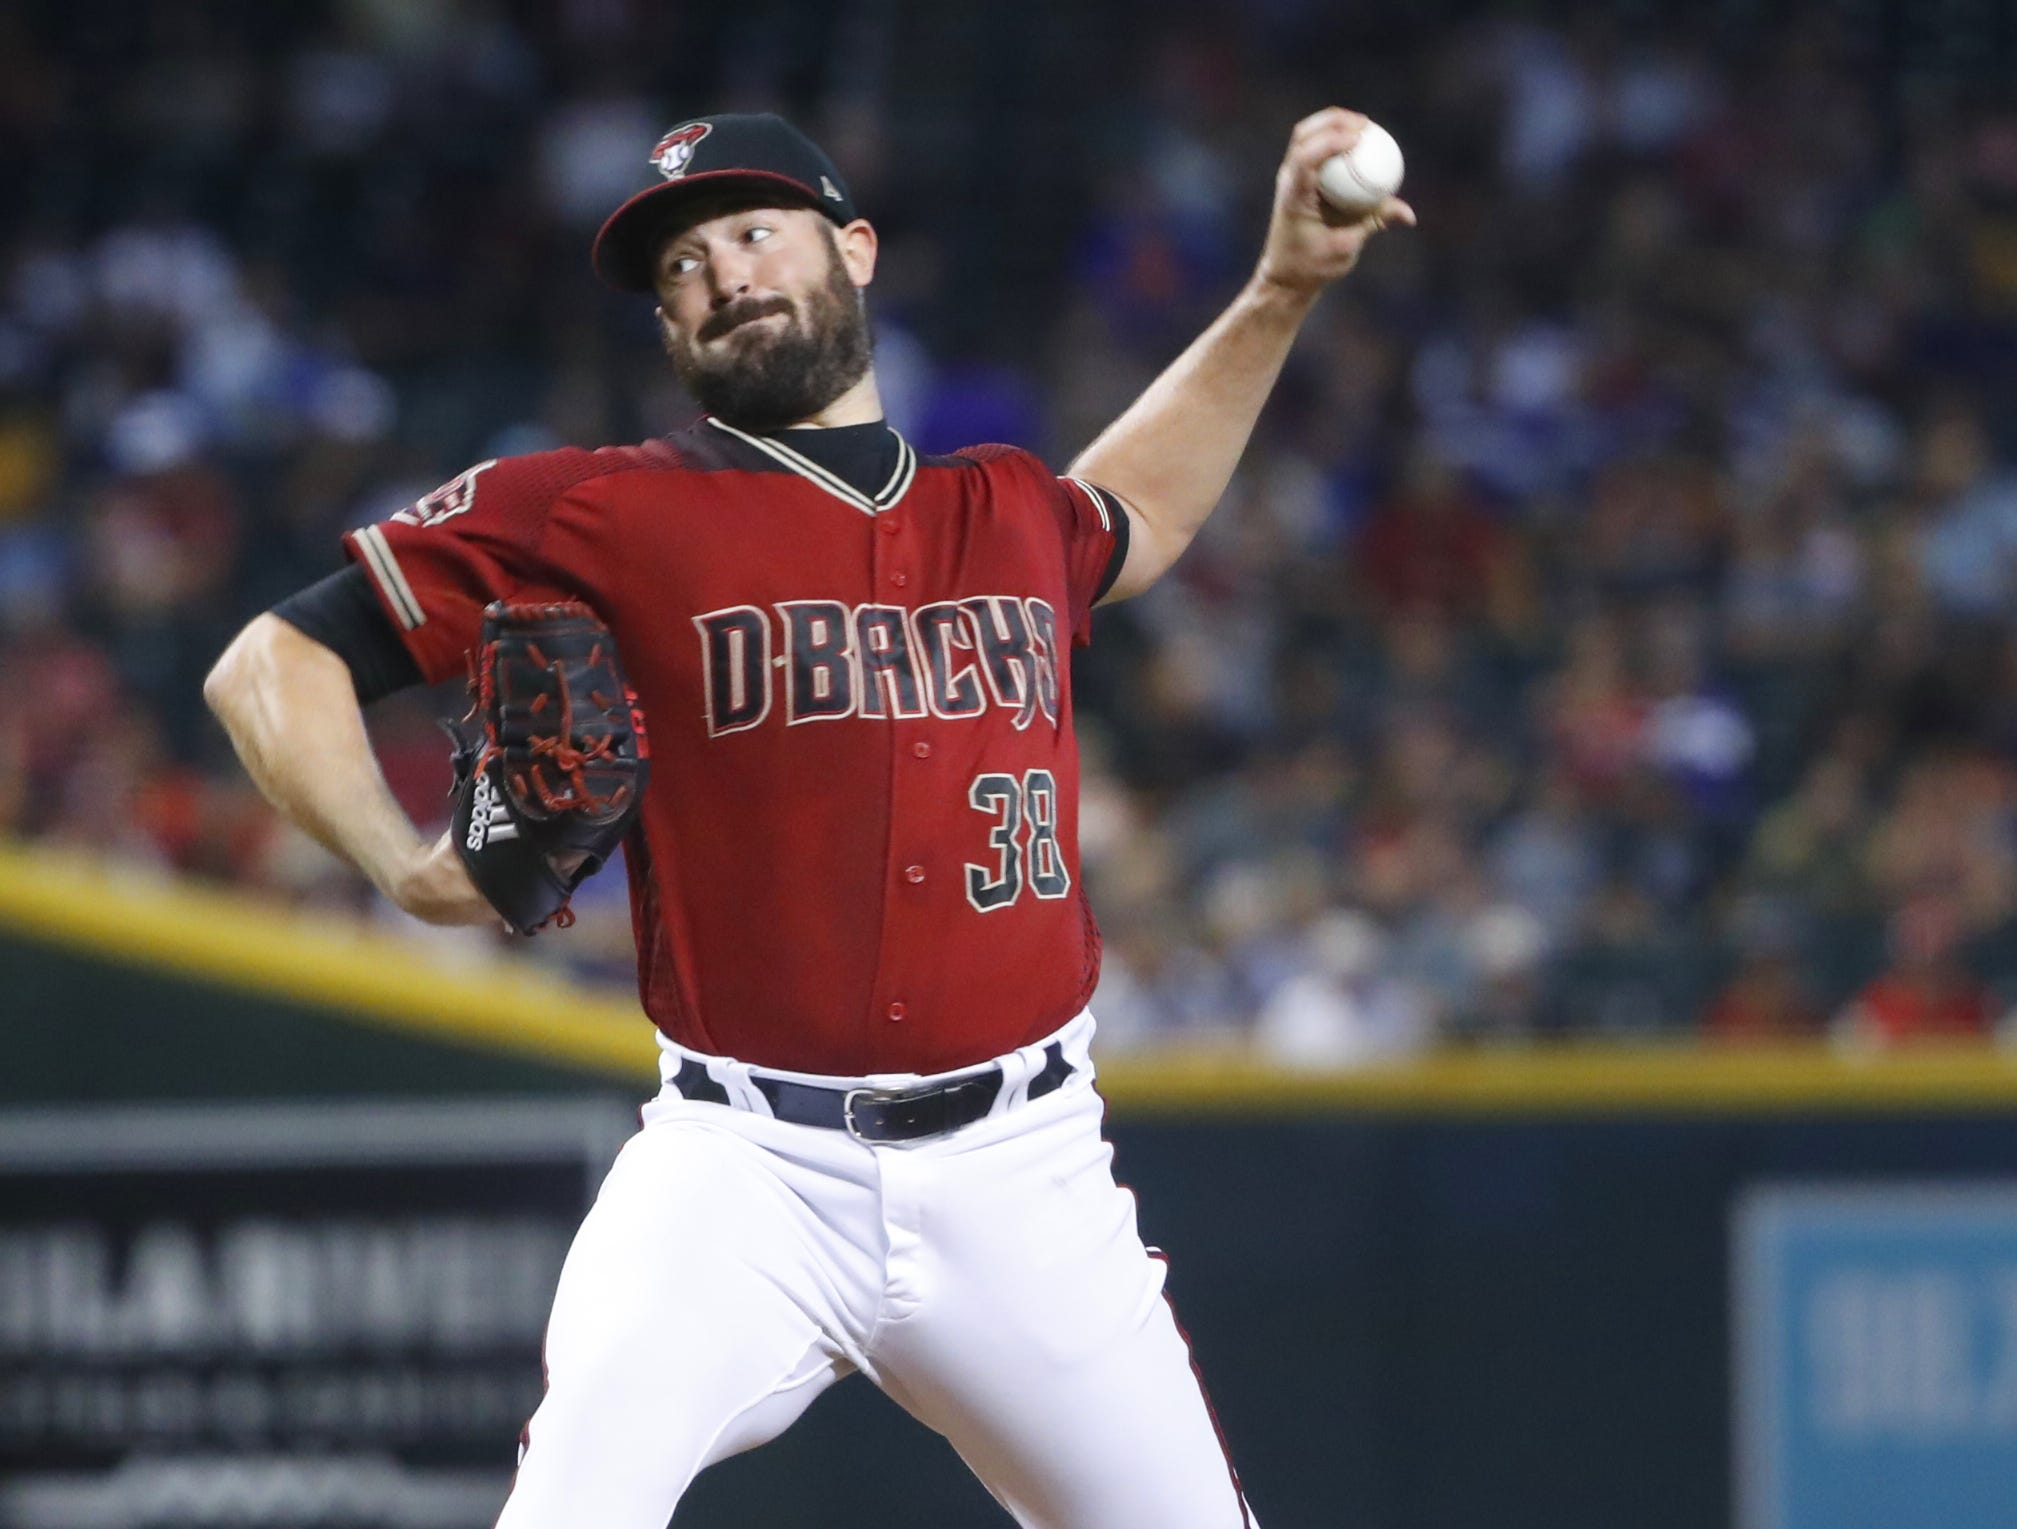 Diamondbacks Robbie Ray (38) pitches against the Braves during the first inning at Chase Field in Phoenix, Ariz. on Sept. 9, 2018.